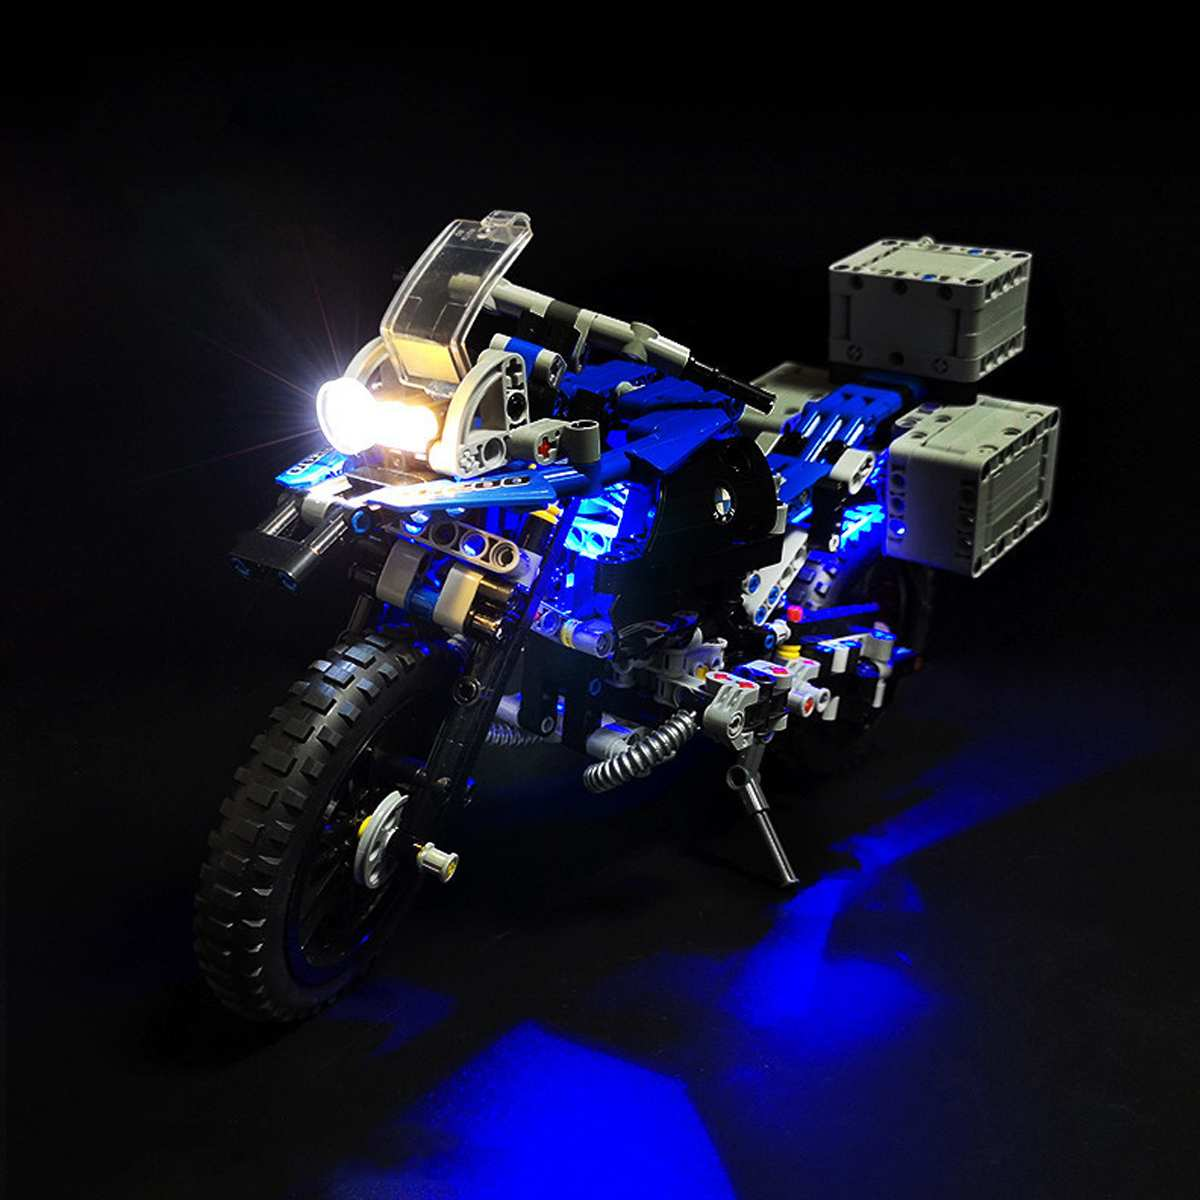 LED Light Kit for <font><b>LEGO</b></font> for <font><b>42063</b></font> Technic Series for BMW R 1200 GS Adventure Motorcycles Blocks (Model Not Included) image